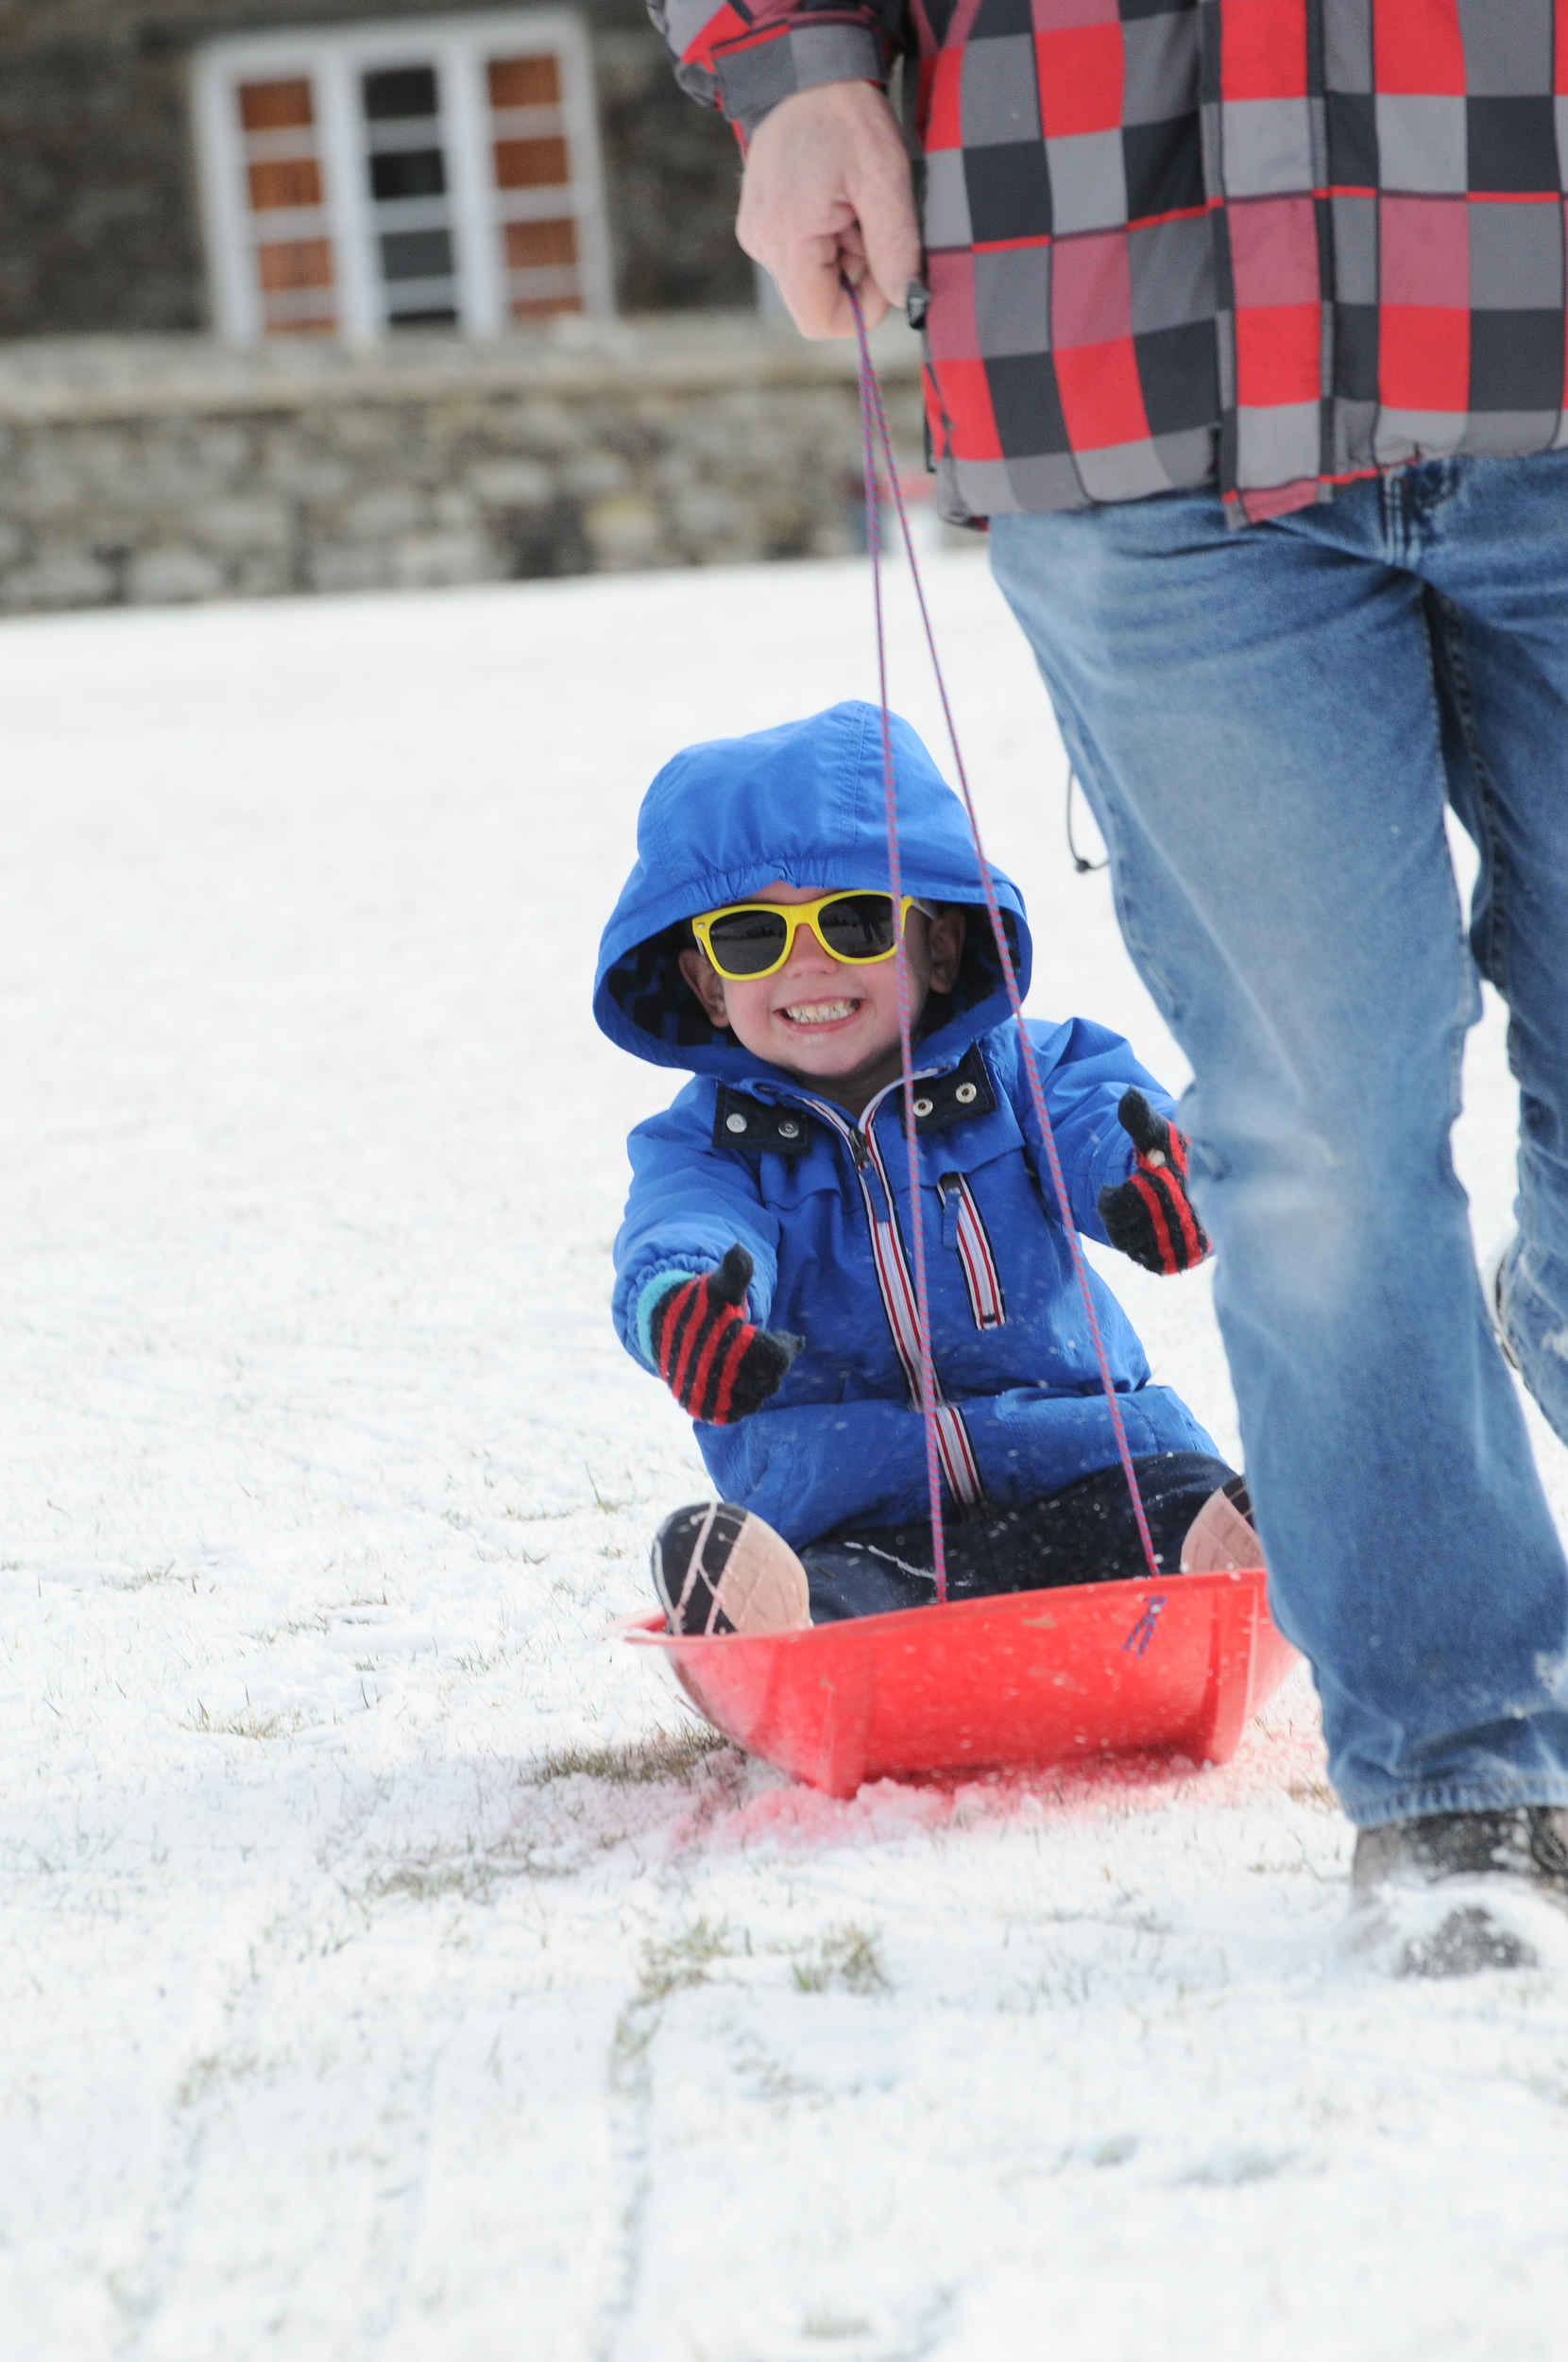 Winter scenes in the West of the island after overnight snowfall - pictured aboard the sledge is Billy Leece (5) being towed by grandad ChrisWinter scenes in St John's after overnight snowfall in the West of the island